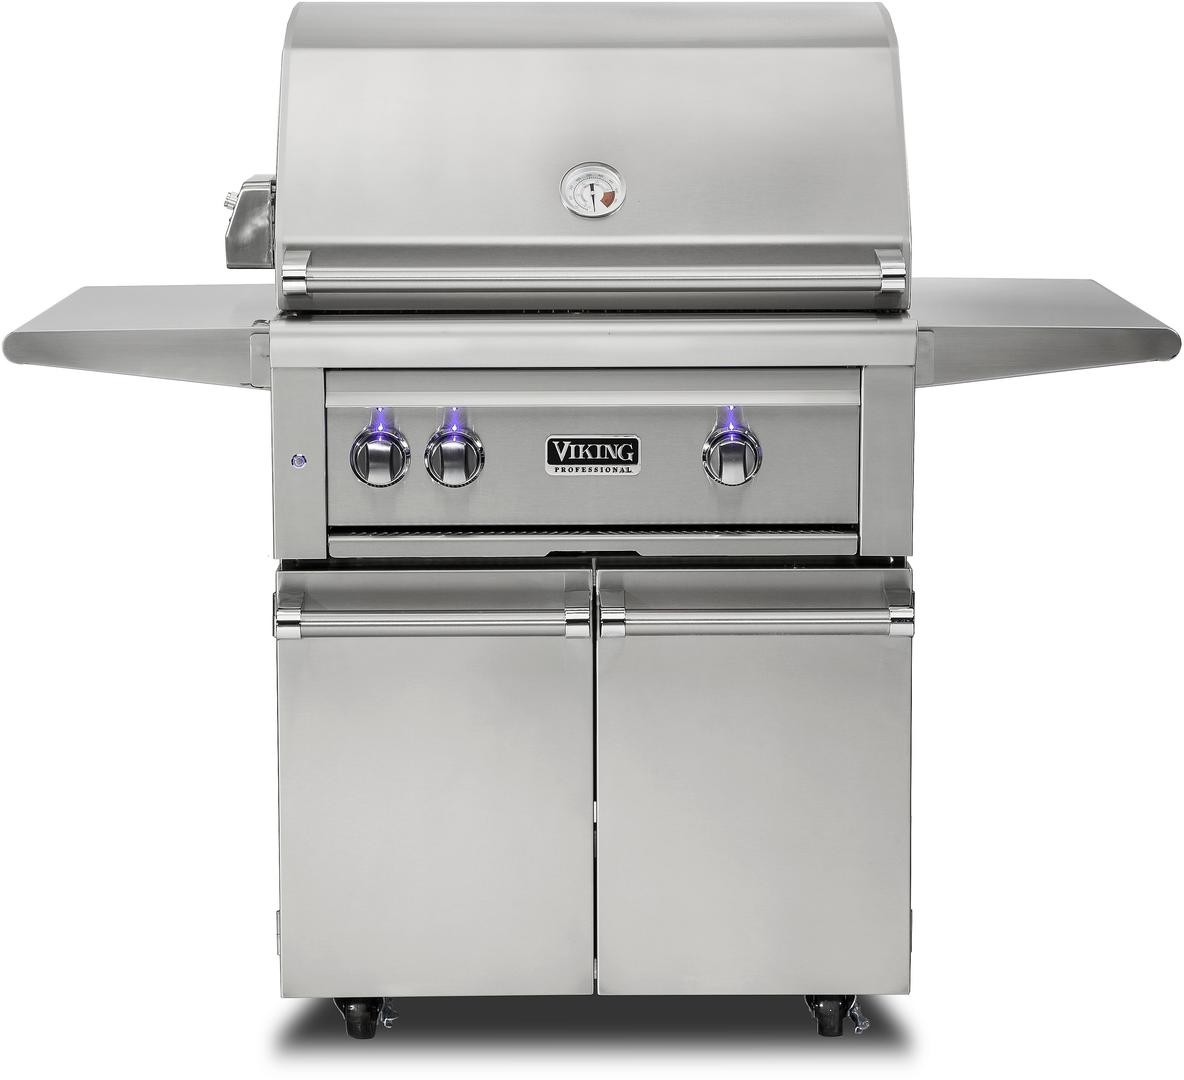 Viking Vqgfs5300nss 30 Inch Freestanding Grill With Prosear 2 Burner Rotisserie Blue Led Knobs Halogen Grill Lights Smoker Box Temperature Gauge Ceramic Briquettes And 840 Sq In Cooking Area Natural Gas